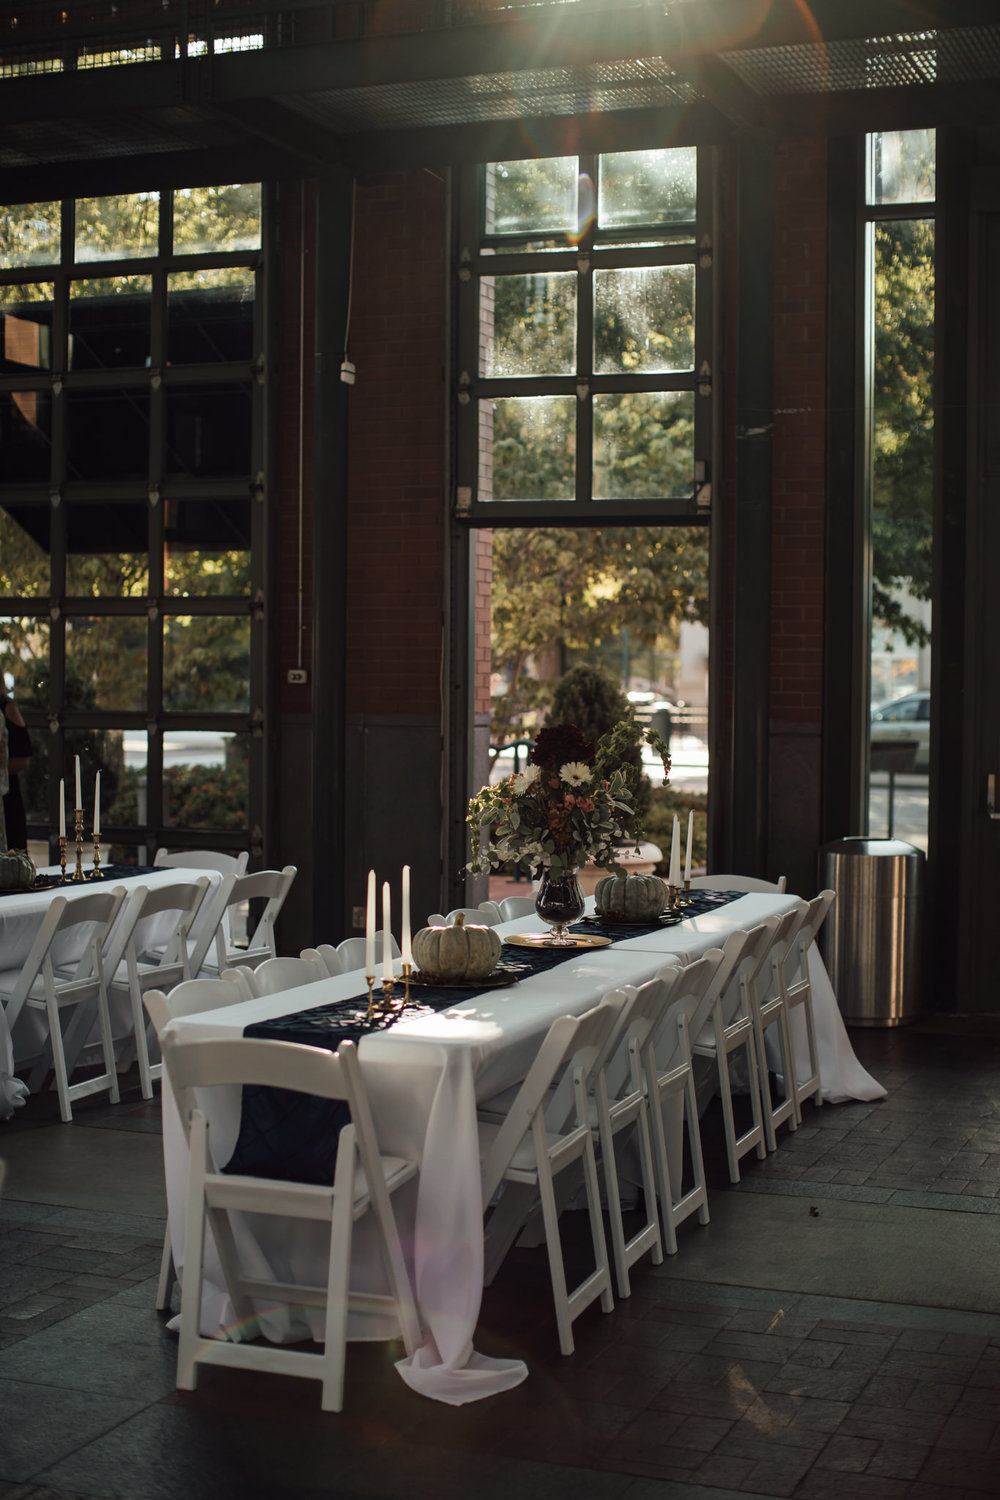 cassie-cook-photography-chattanooga-wedding-photographer-waterhouse-pavillon-adventurous-wedding